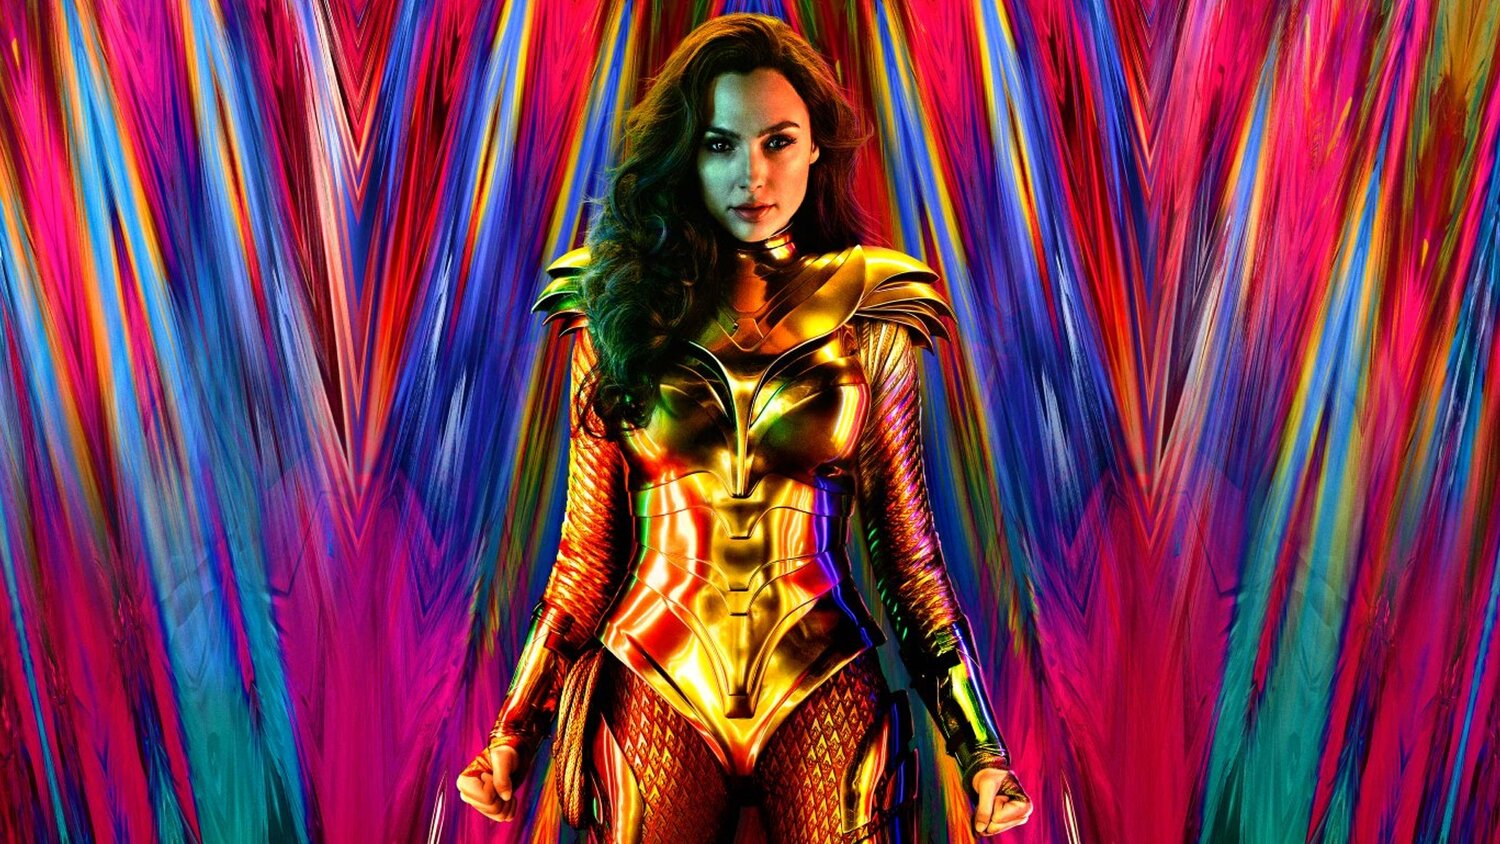 Trailer: Wonder Woman 1984 (2020)